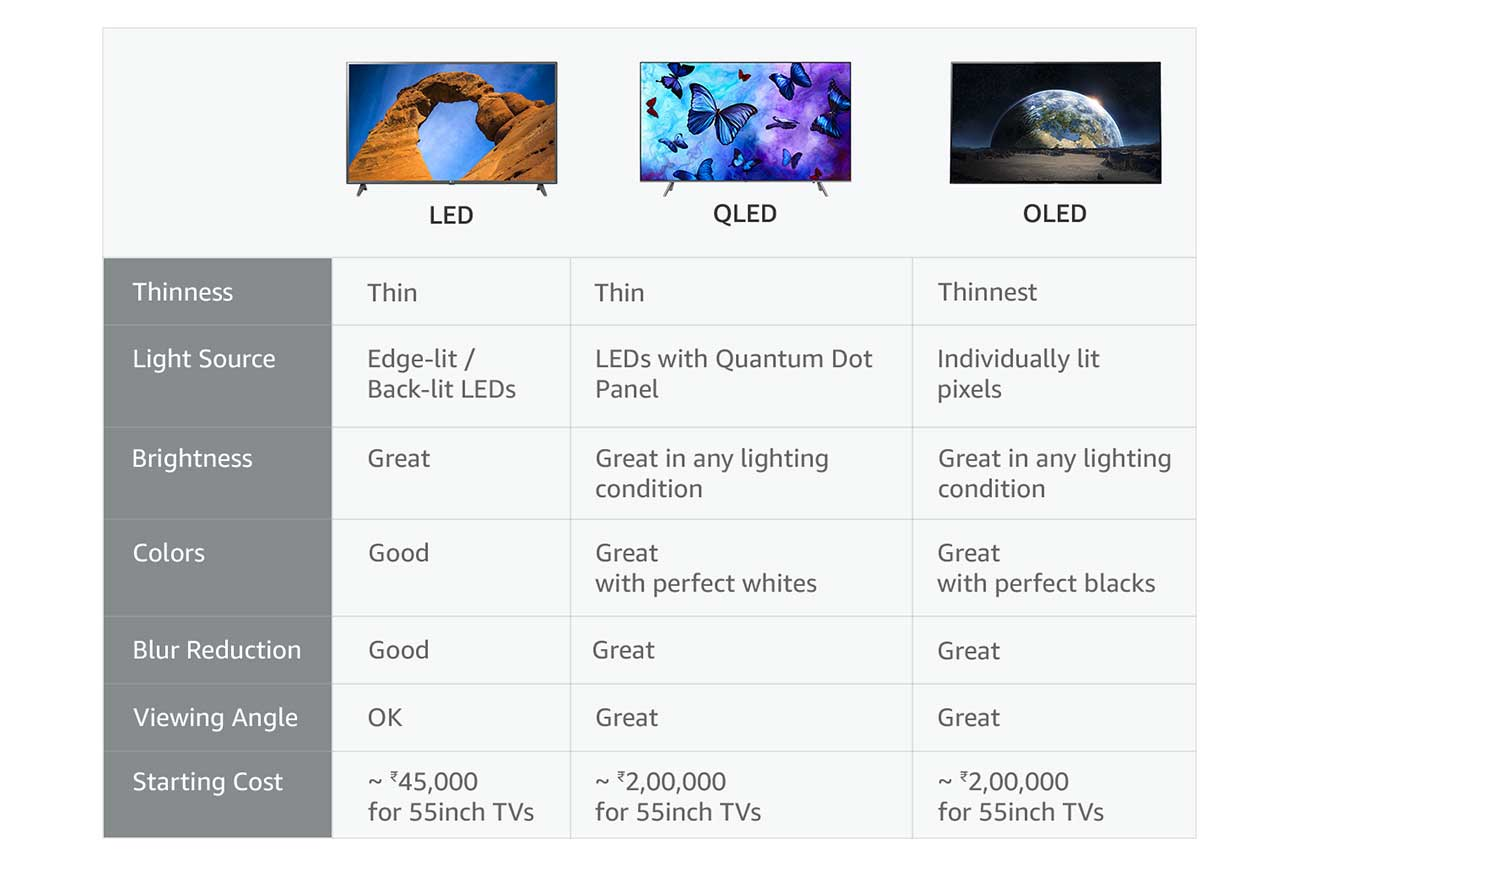 Comparison - LED/OLED/QLED